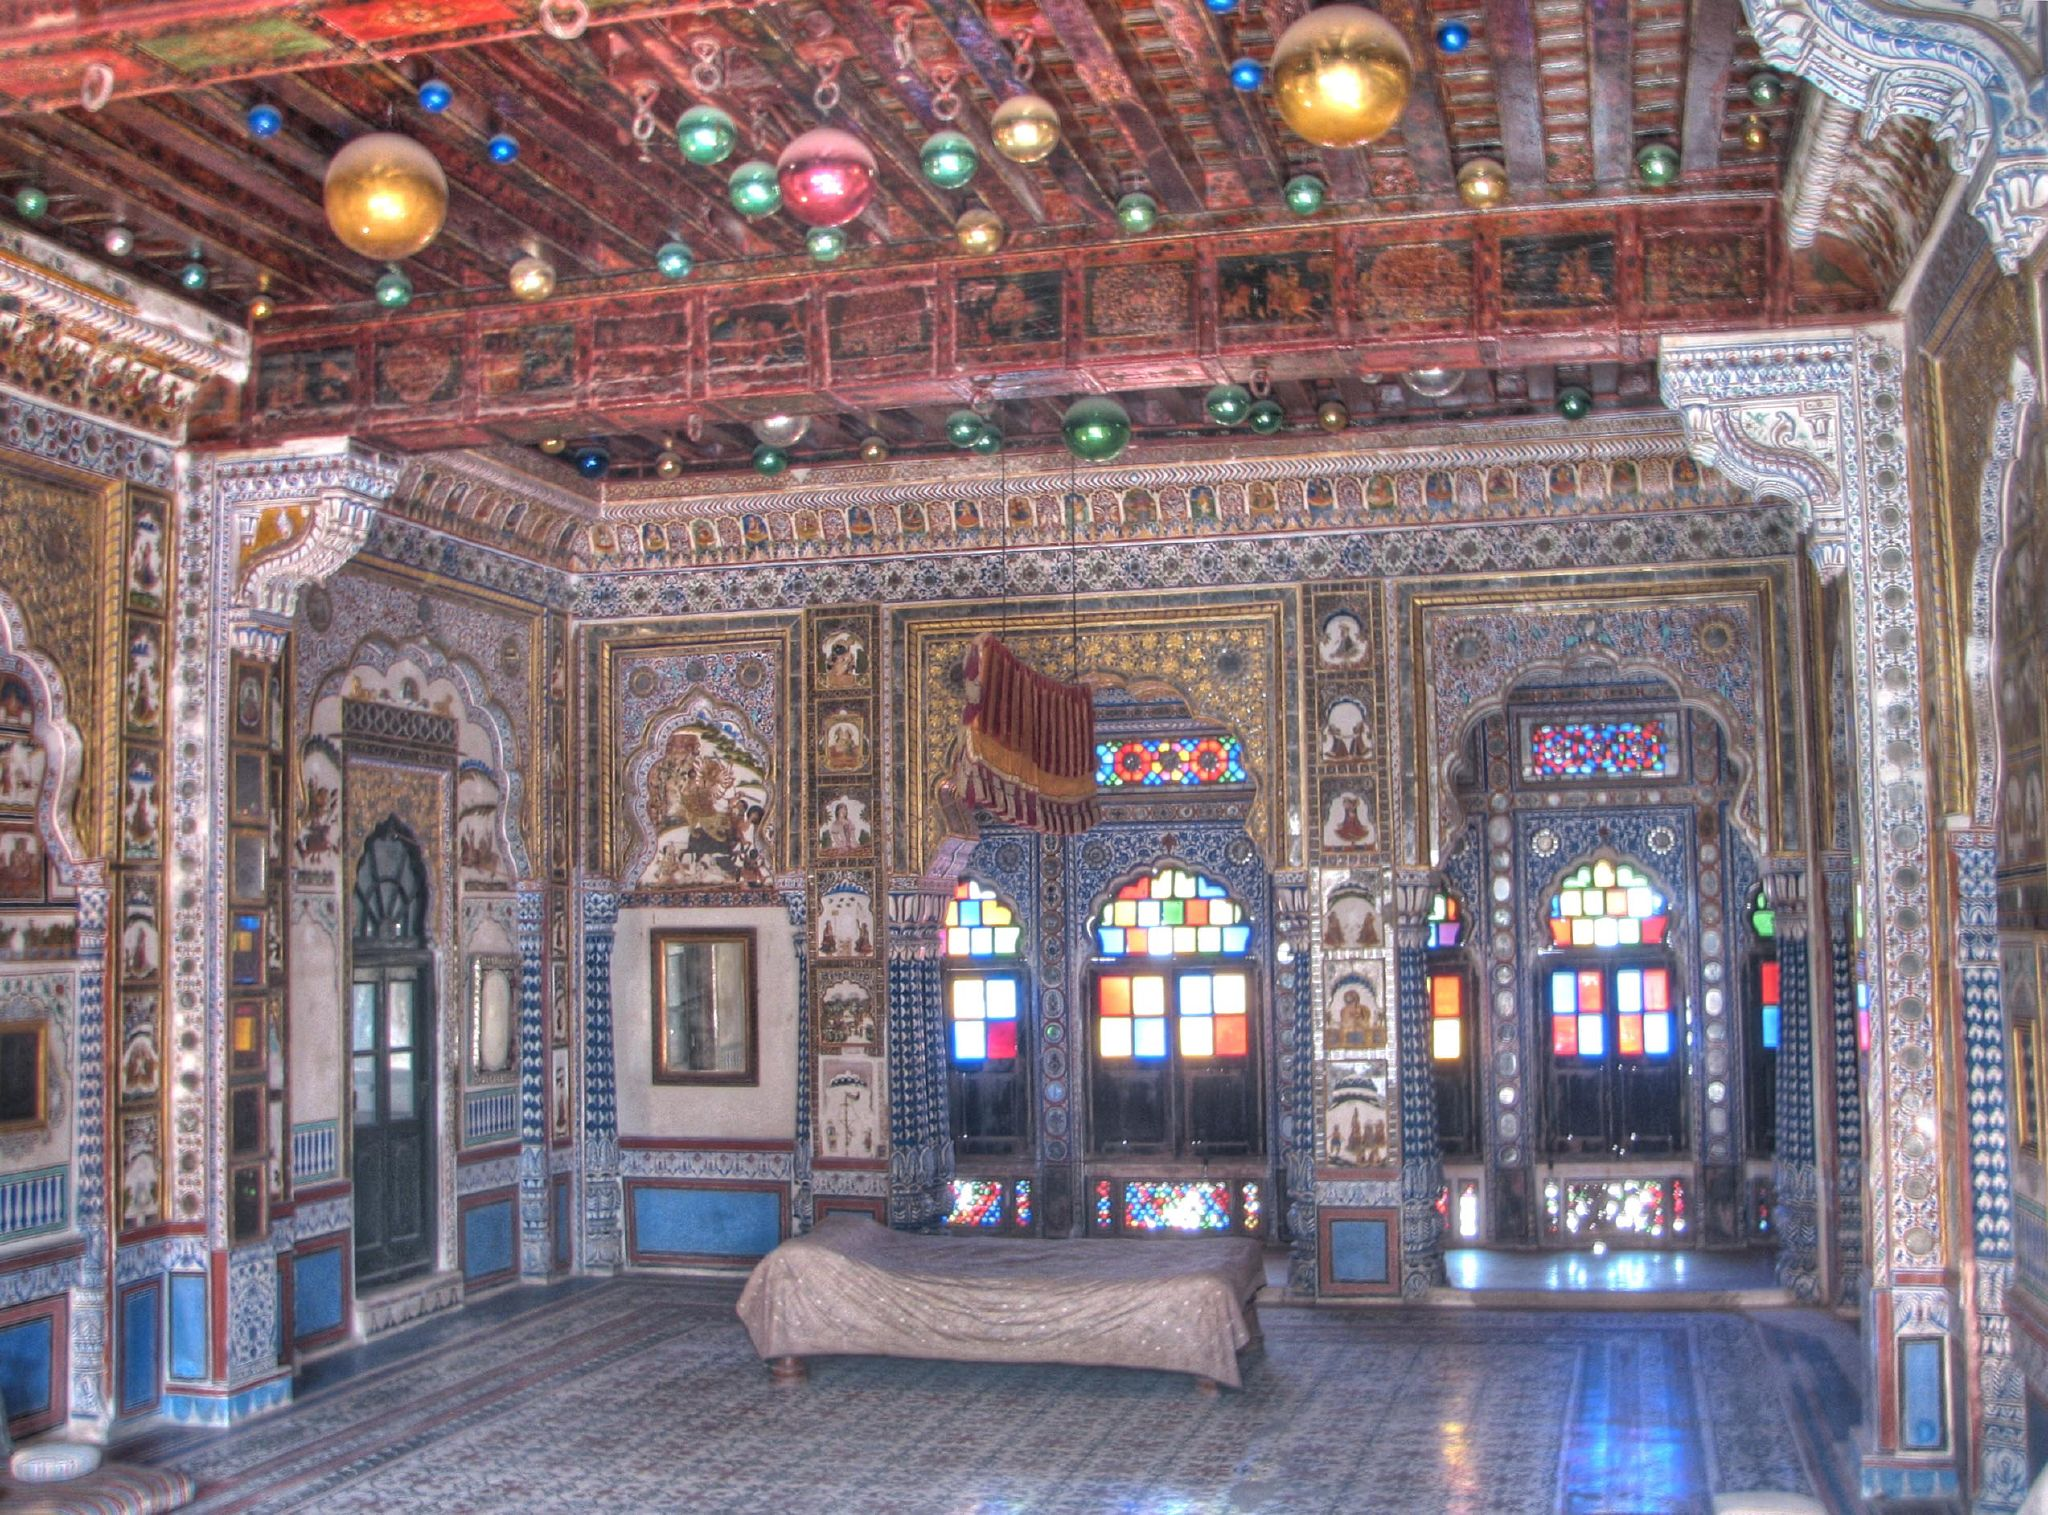 Palace Wallpaper Hd File Maharajas Room Within The Mehrangarh Fort Palace Jpg